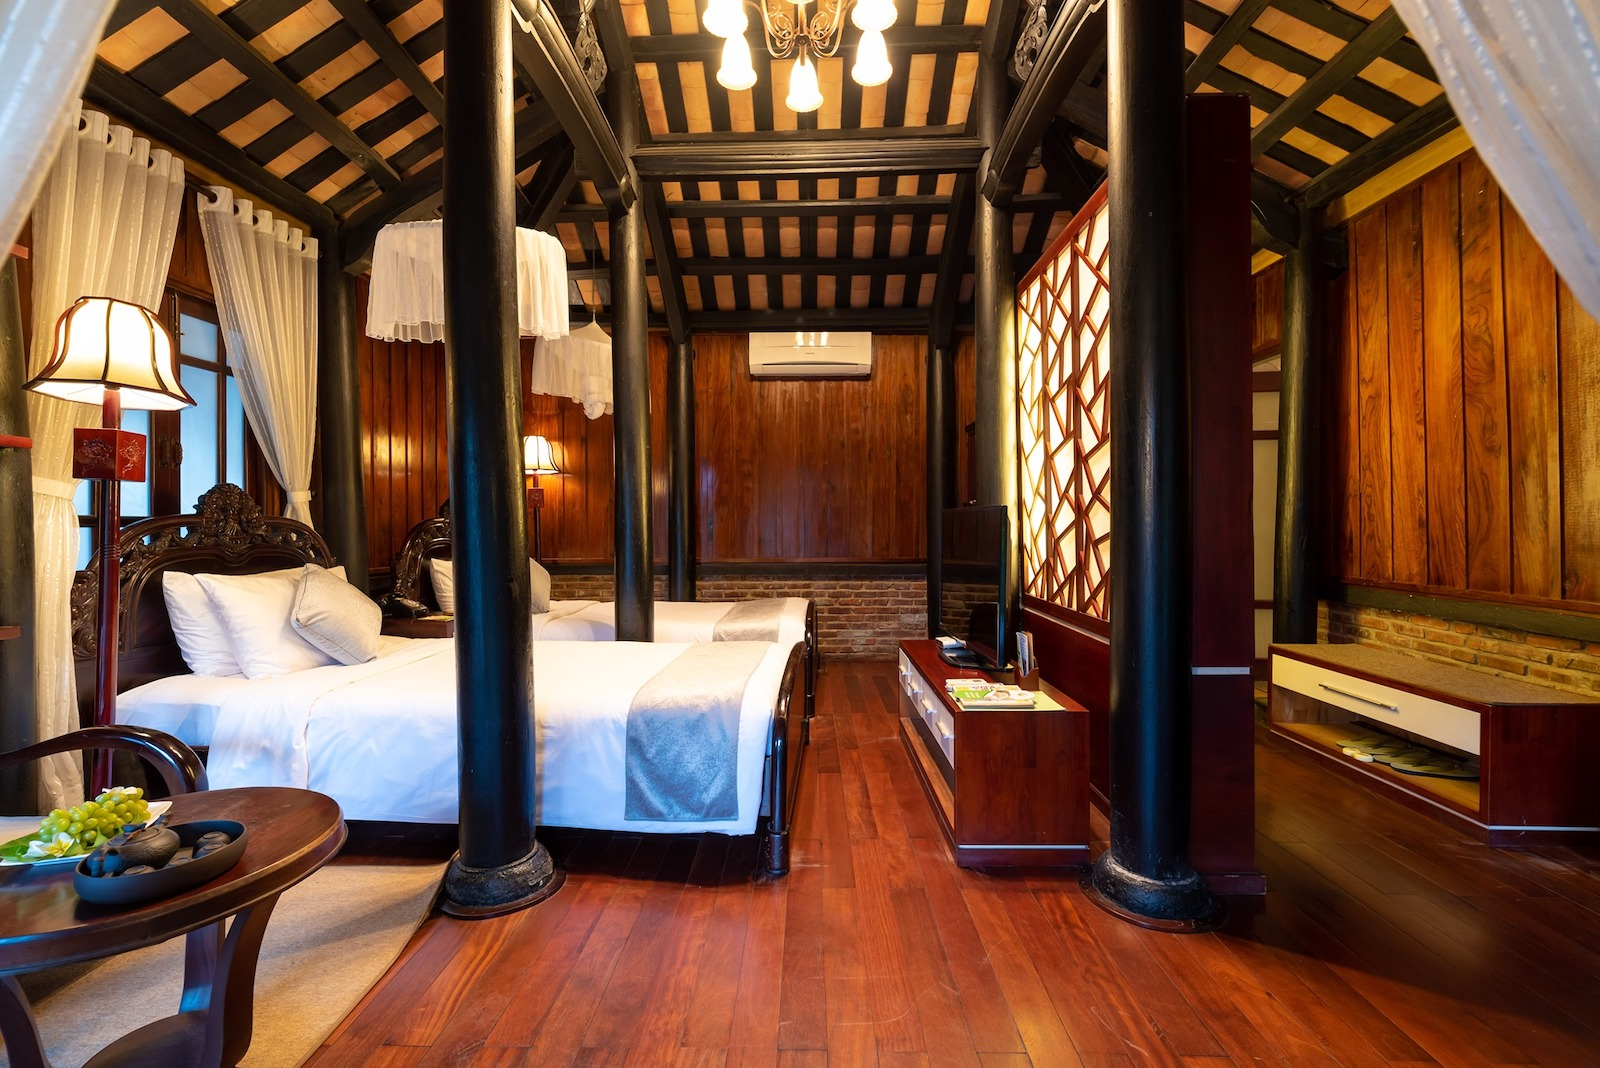 Image of Phu Thinh Boutique and Spa in Hoi An, Vietnam